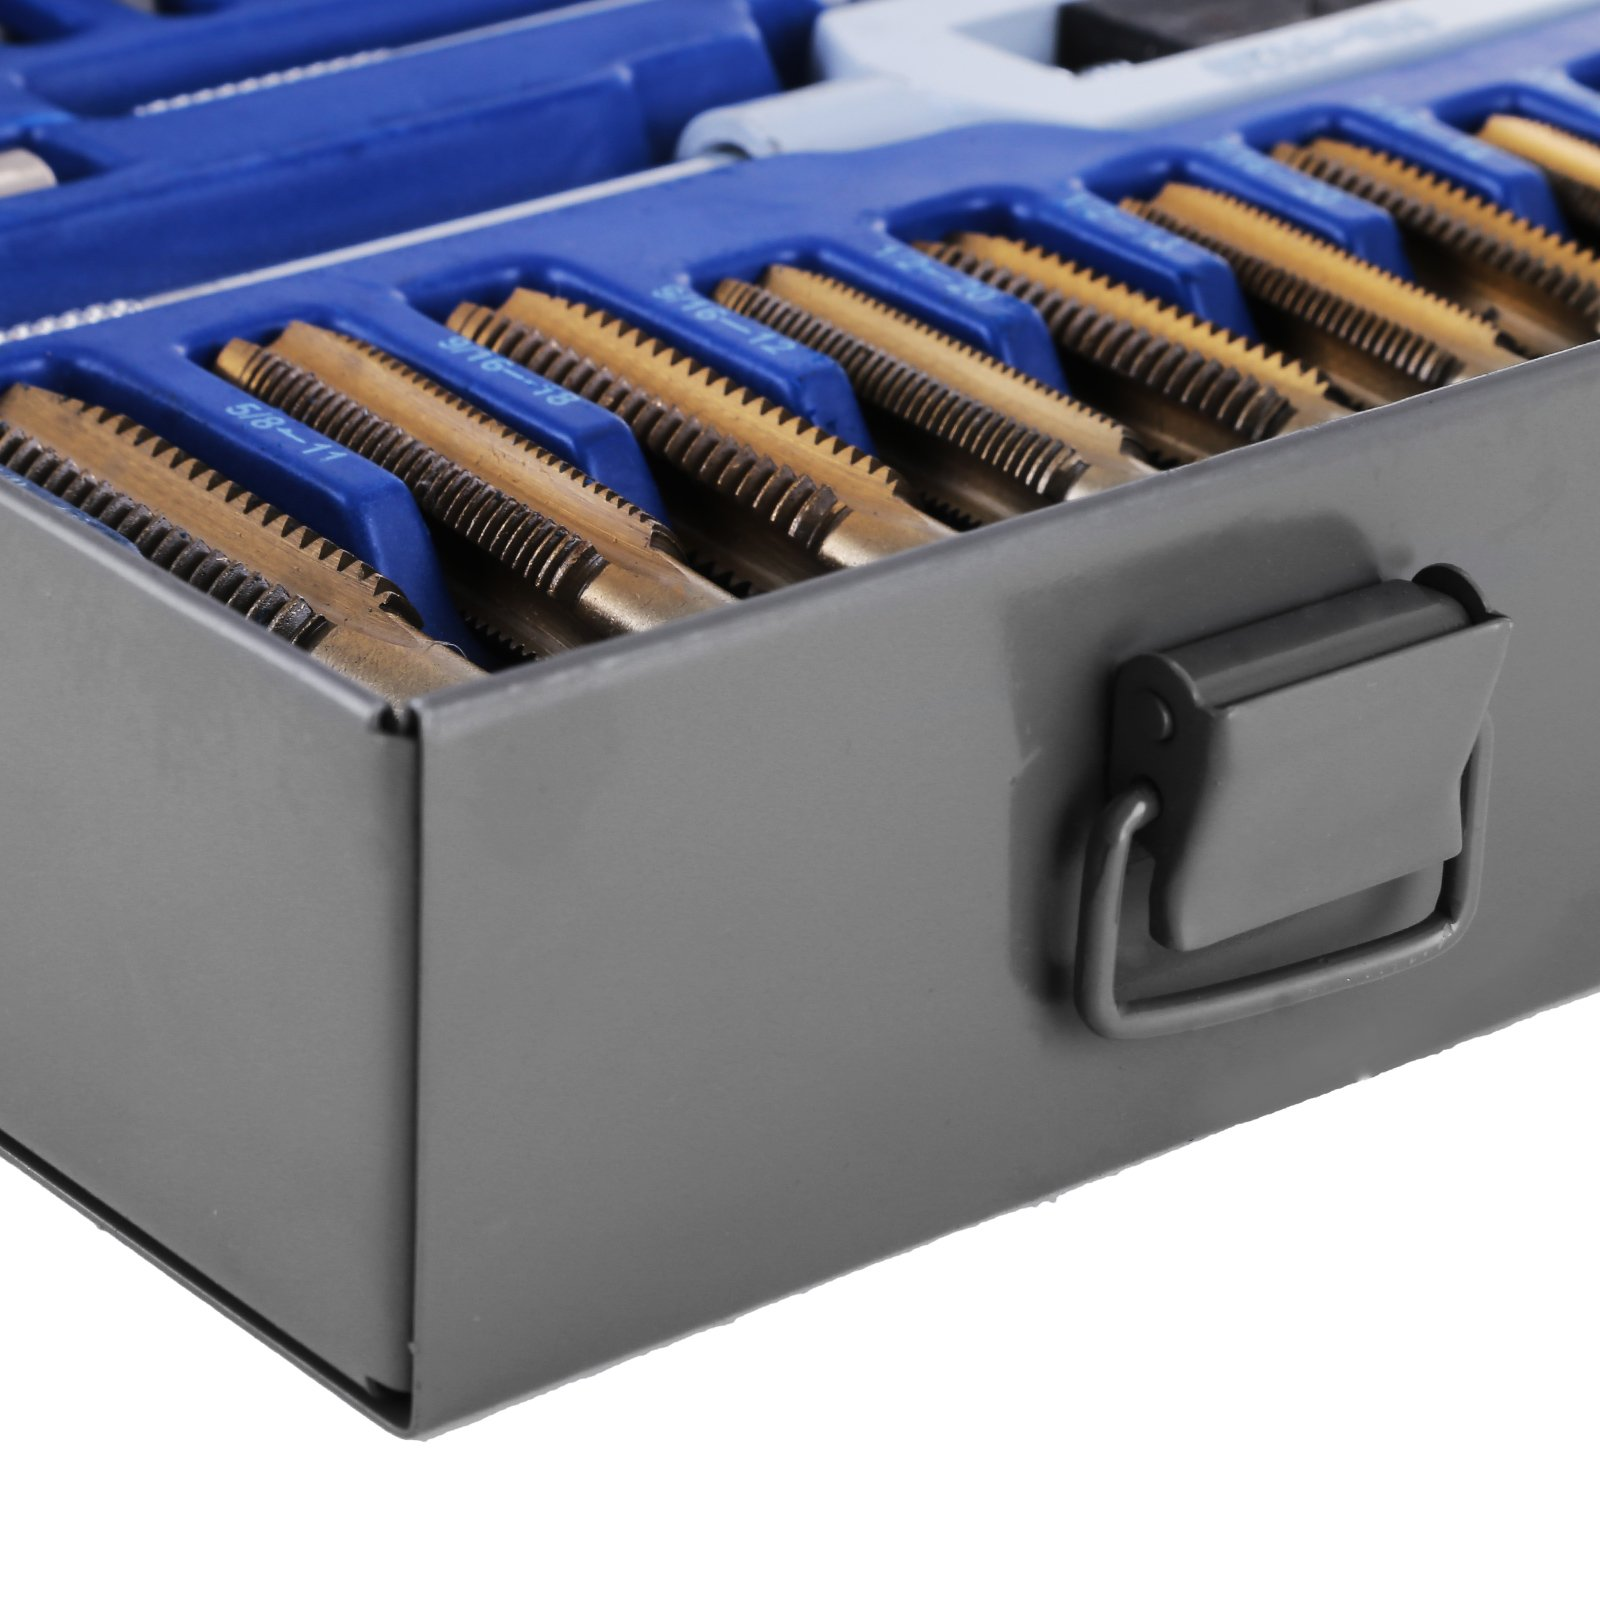 Happybuy Tap and Die Set 86PCS Combination SAE / Metric Tap and Die Kit for Cutting External and Internal Threads with Storage Case by Happybuy (Image #9)